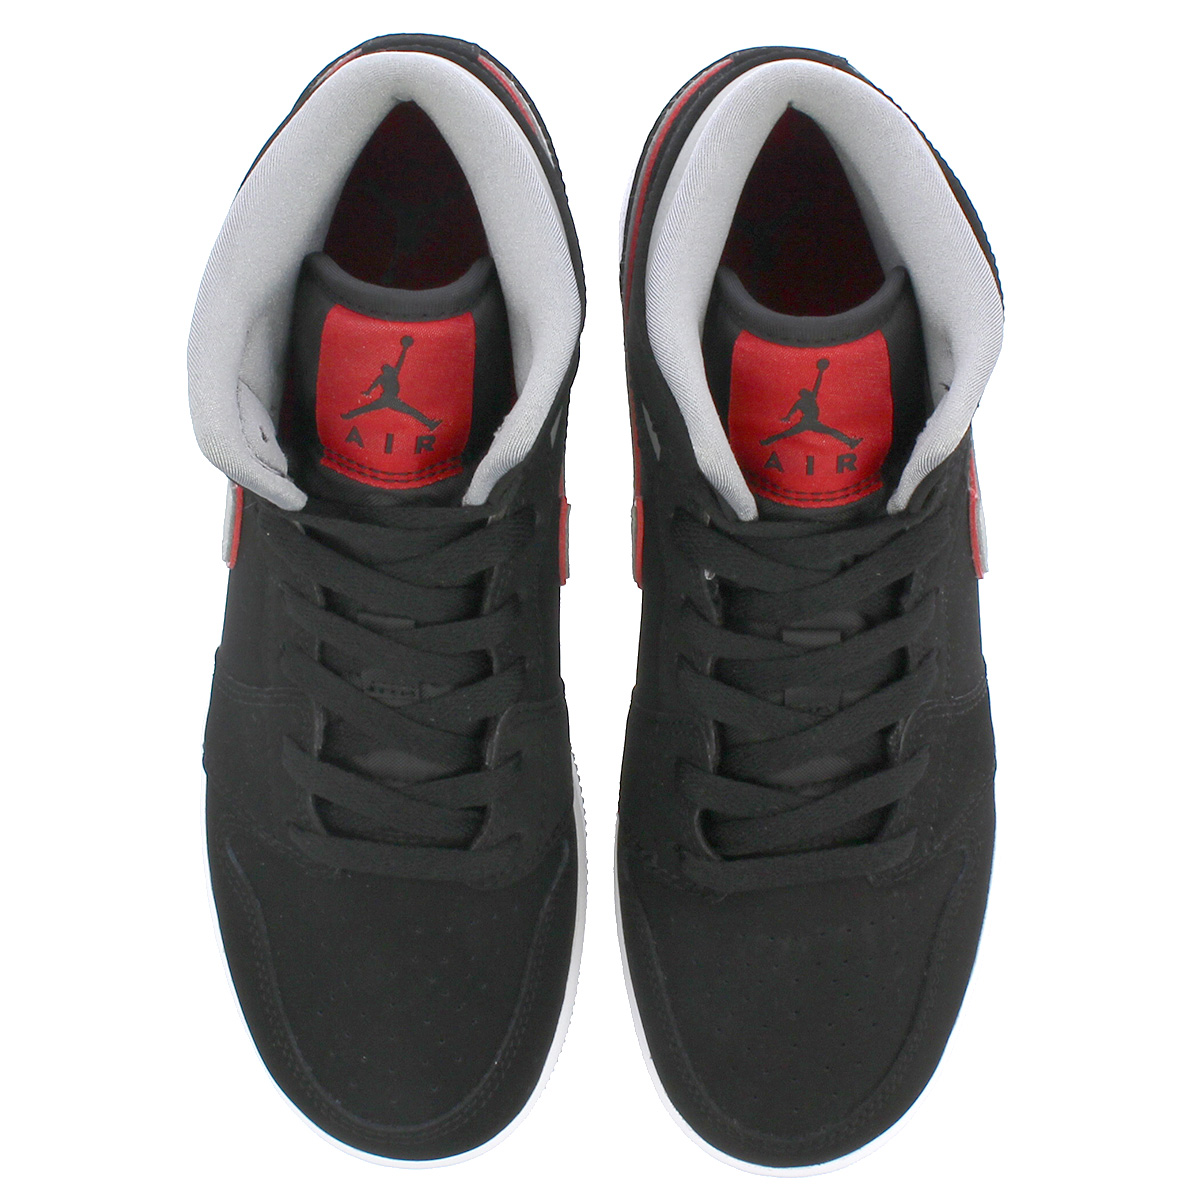 new style ae369 802ee NIKE AIR JORDAN 1 MID BG Nike Air Jordan 1 mid BG BLACK PARTICLE GREY WHITE GYM  RED 554,725-060